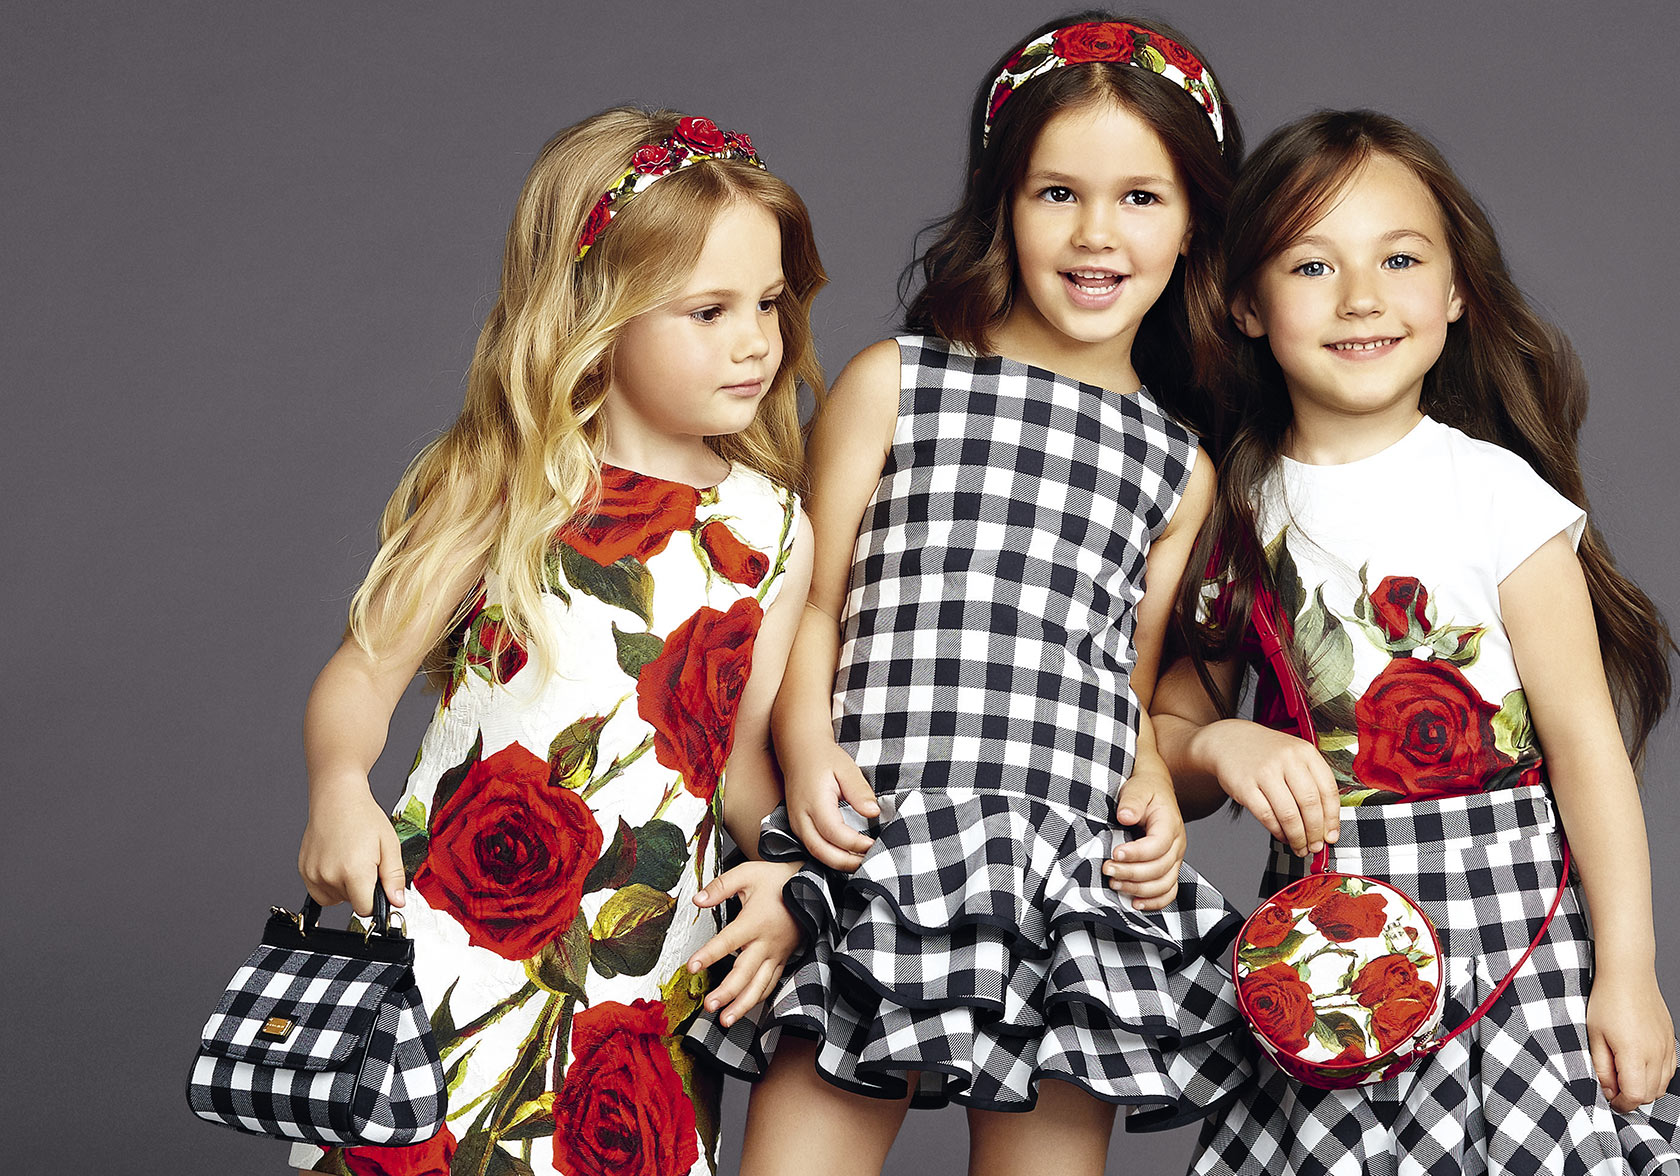 dolce-and-gabbana-summer-2015-child-collection-34-zoom.jpg